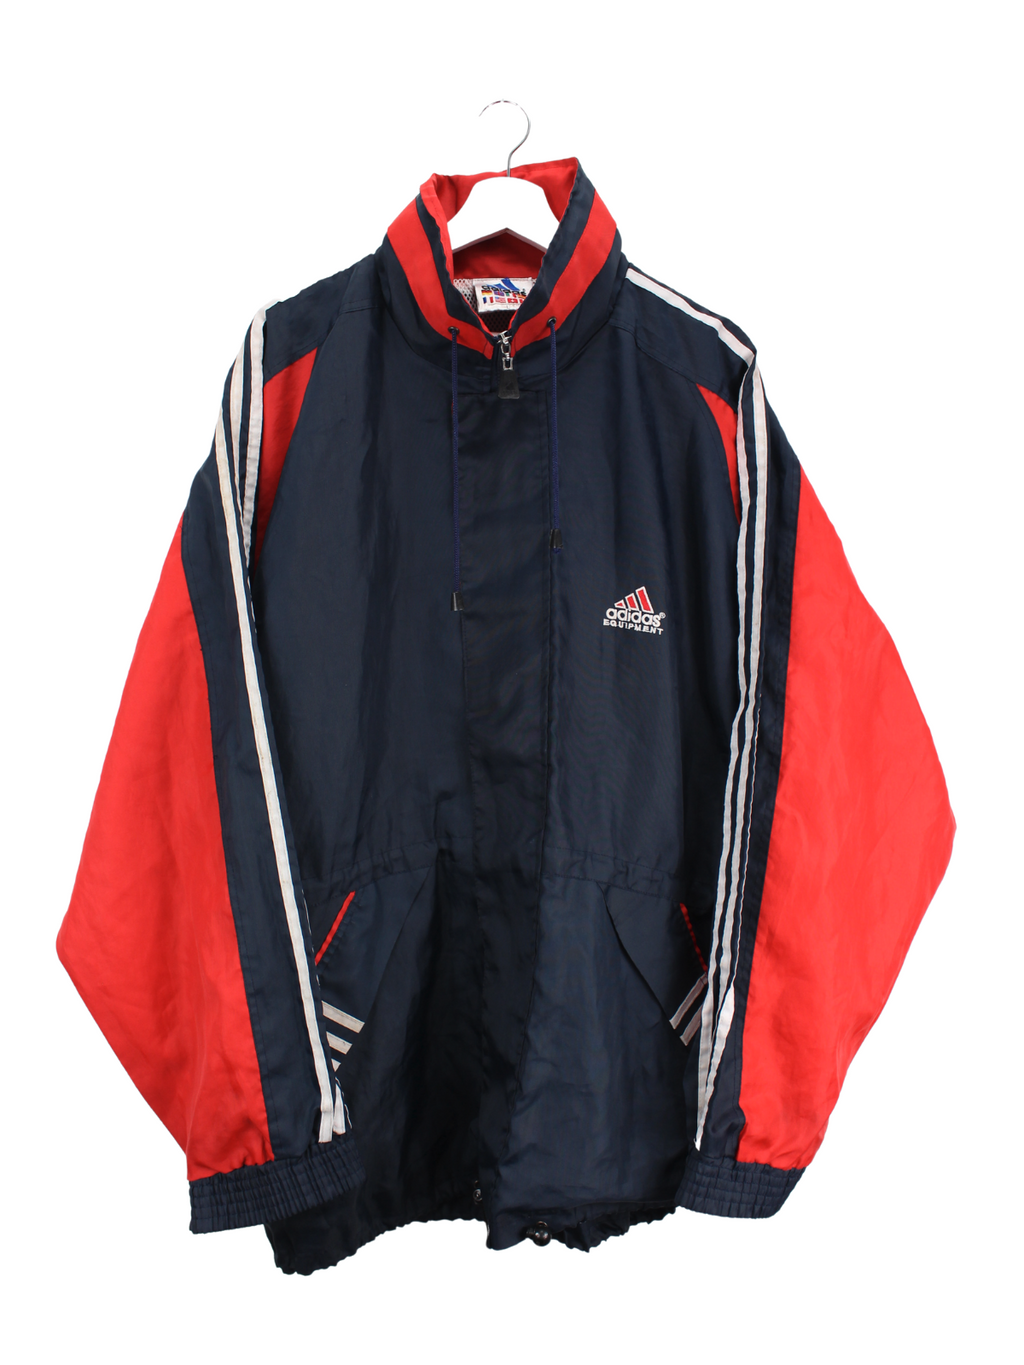 Adidas Equipment Jacke Blau/Rot L